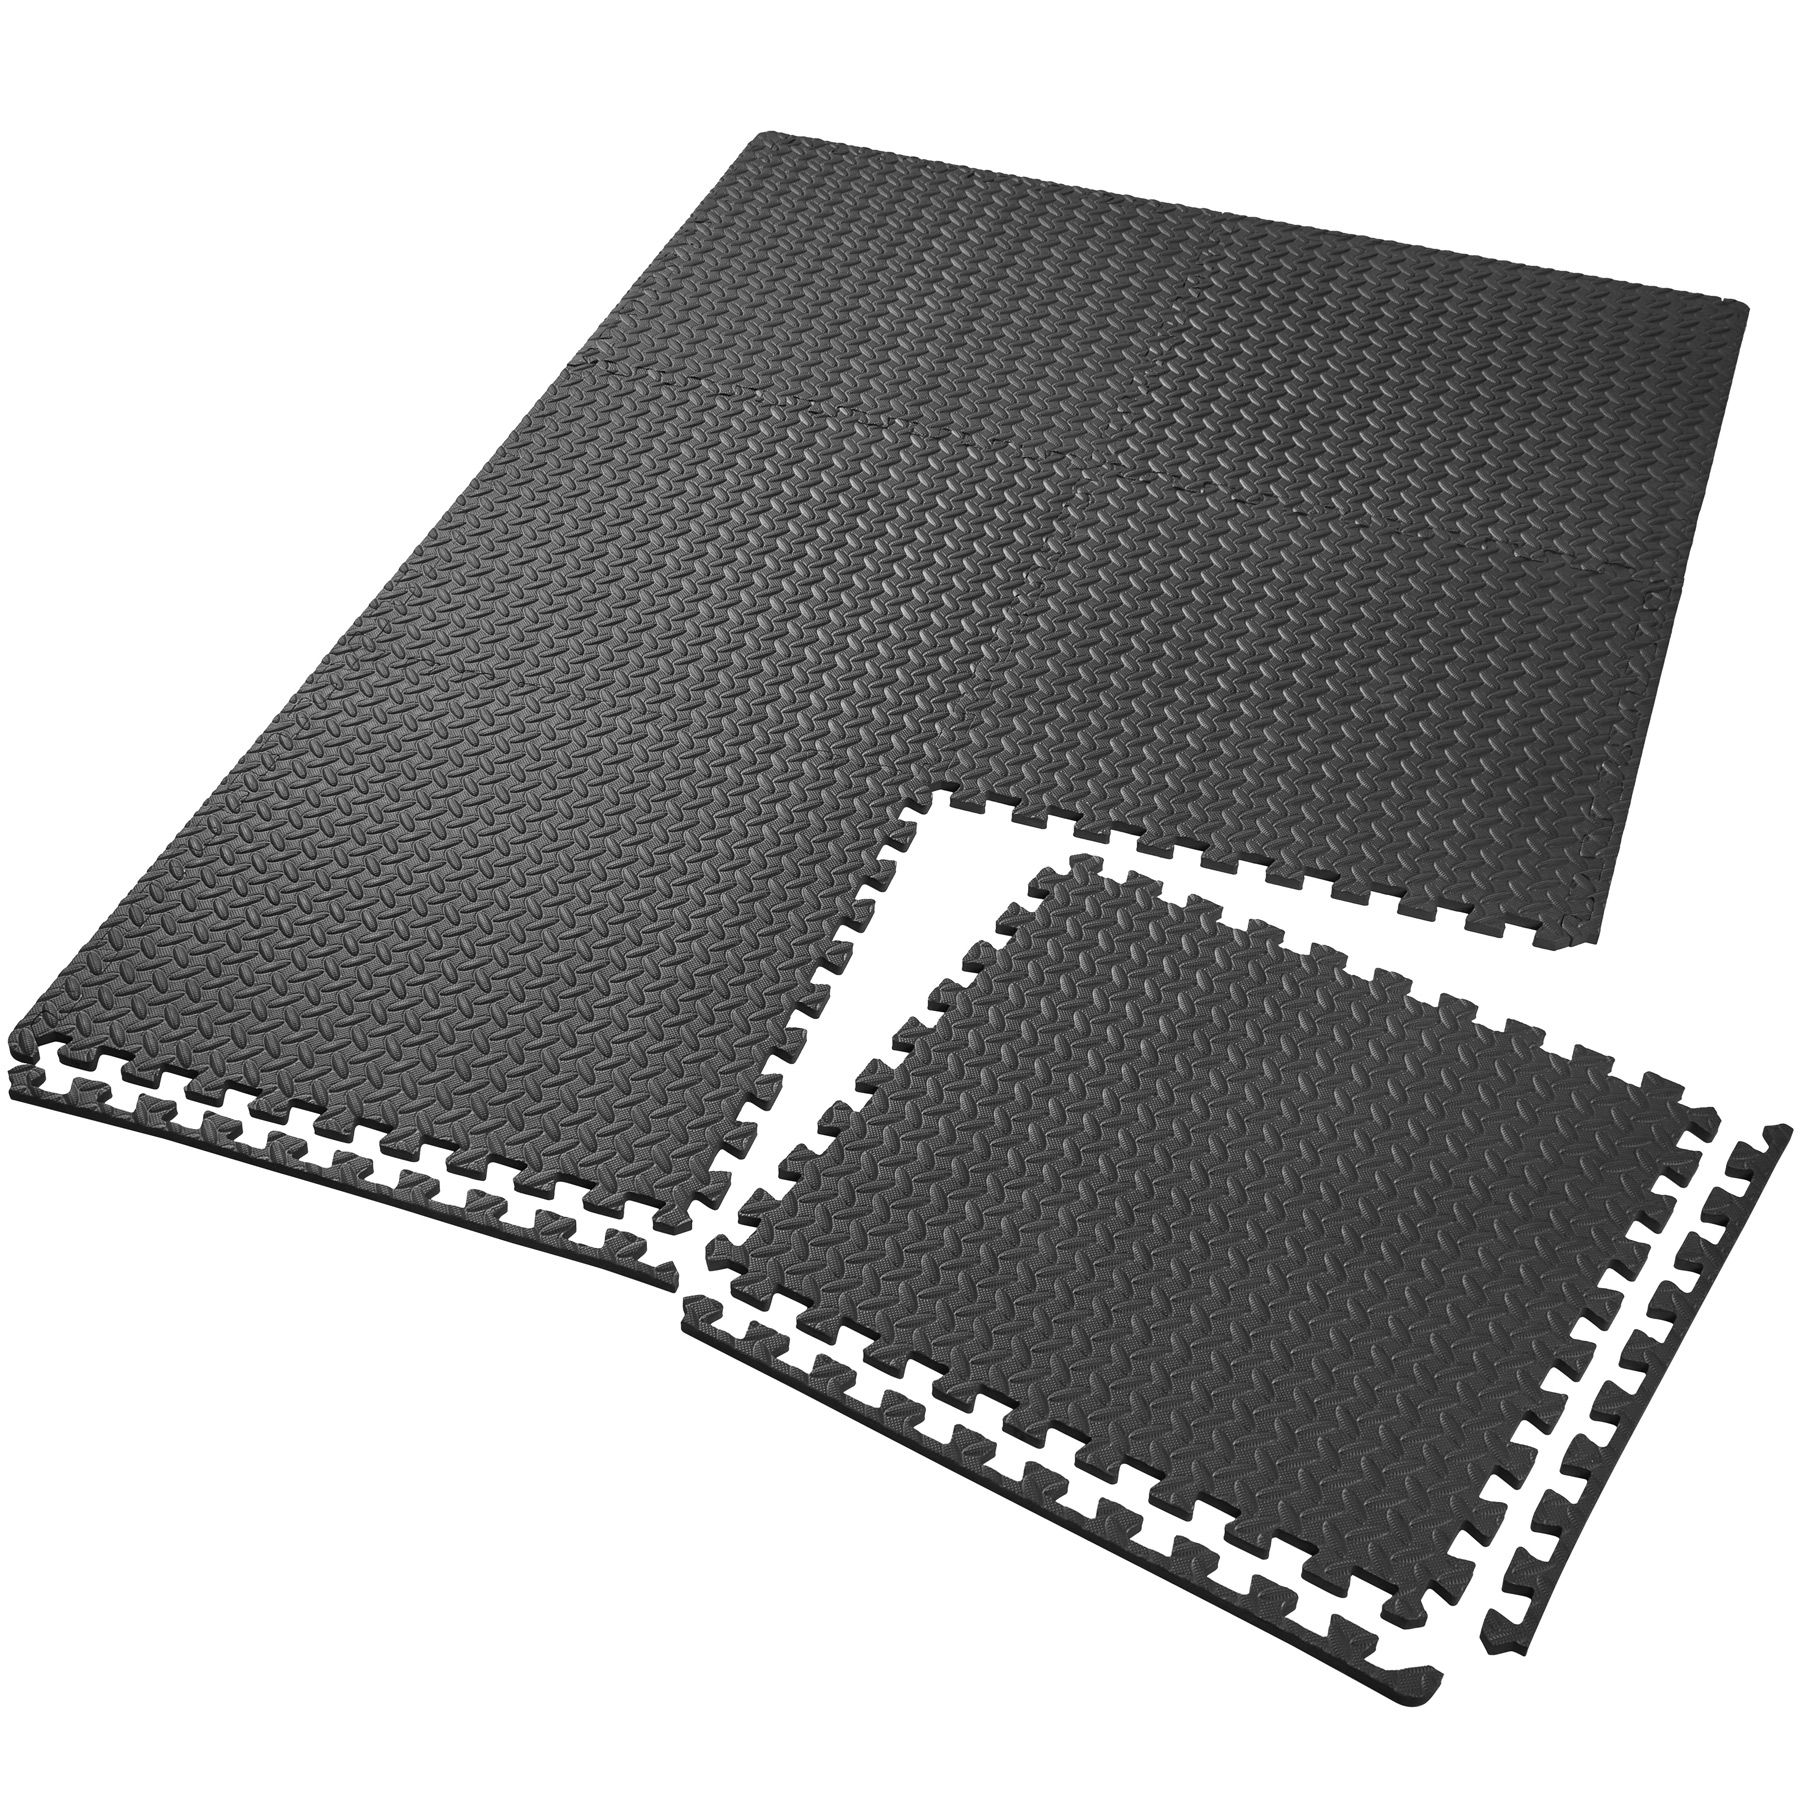 pvc size seat design carpets of x products amazon and rugs long hard chairs hallway mats strong for runner mat under floor plastic on floors amazoncom hardwood wood clear rolled chair large floortex desk protector office full carpet rug feet vinyl inches home